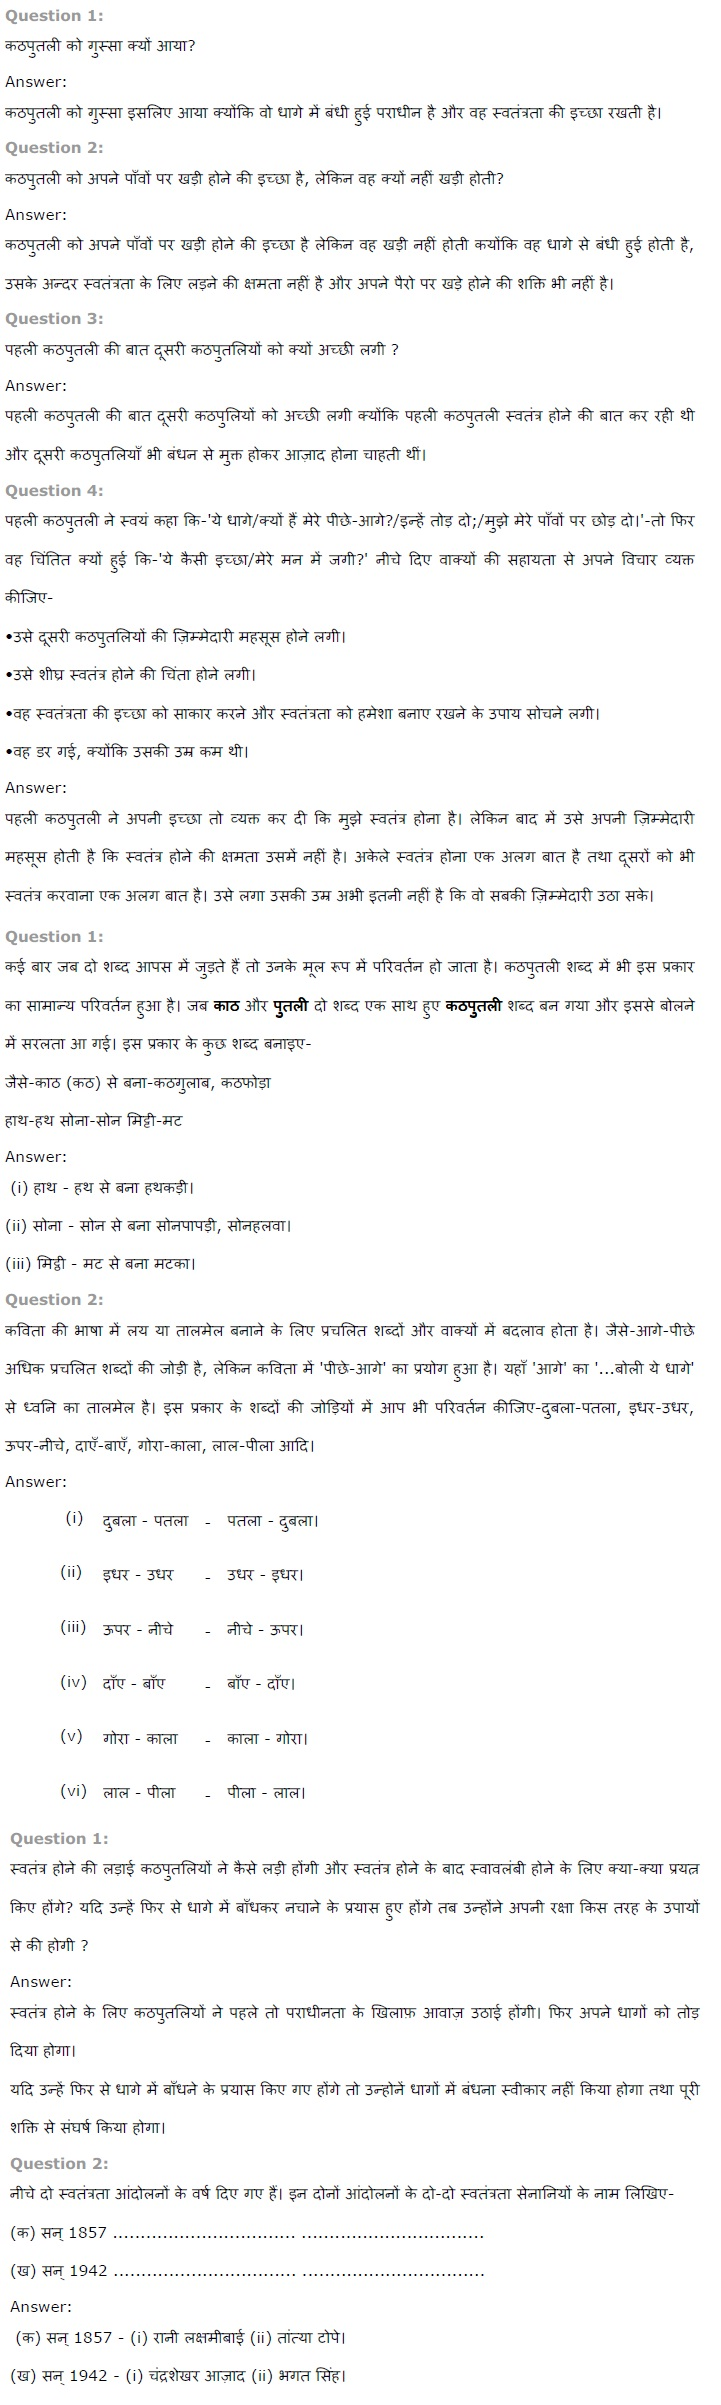 NCERT Solutions for Class 7th Hindi Chapter 4 कठपुतली PDF Download Free 2018-19